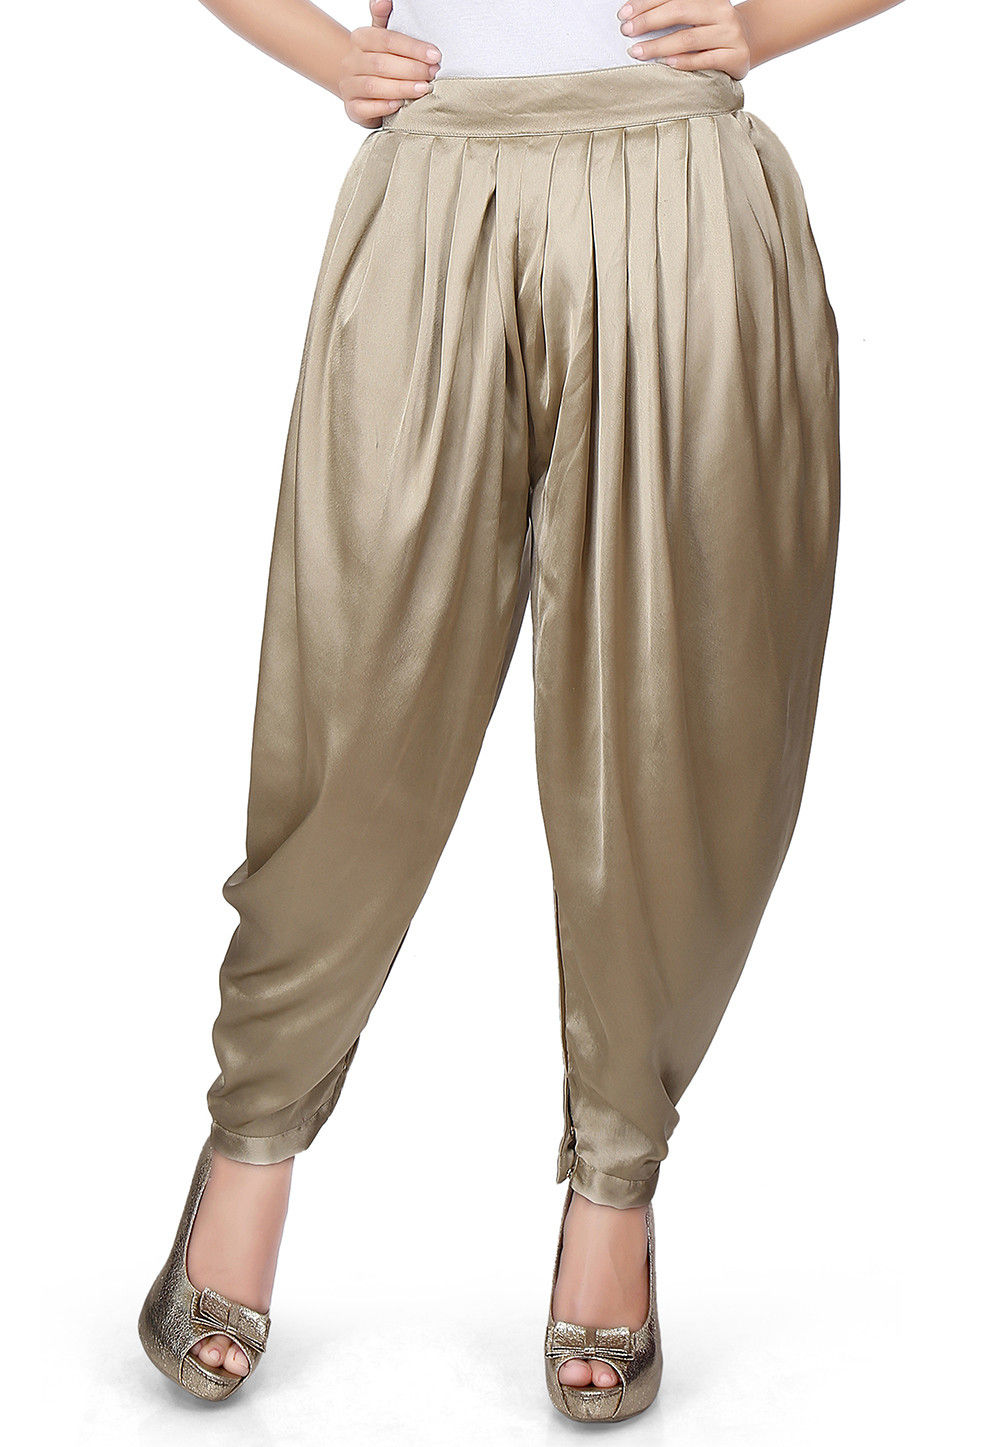 Plain Satin Dhoti Pant in Beige